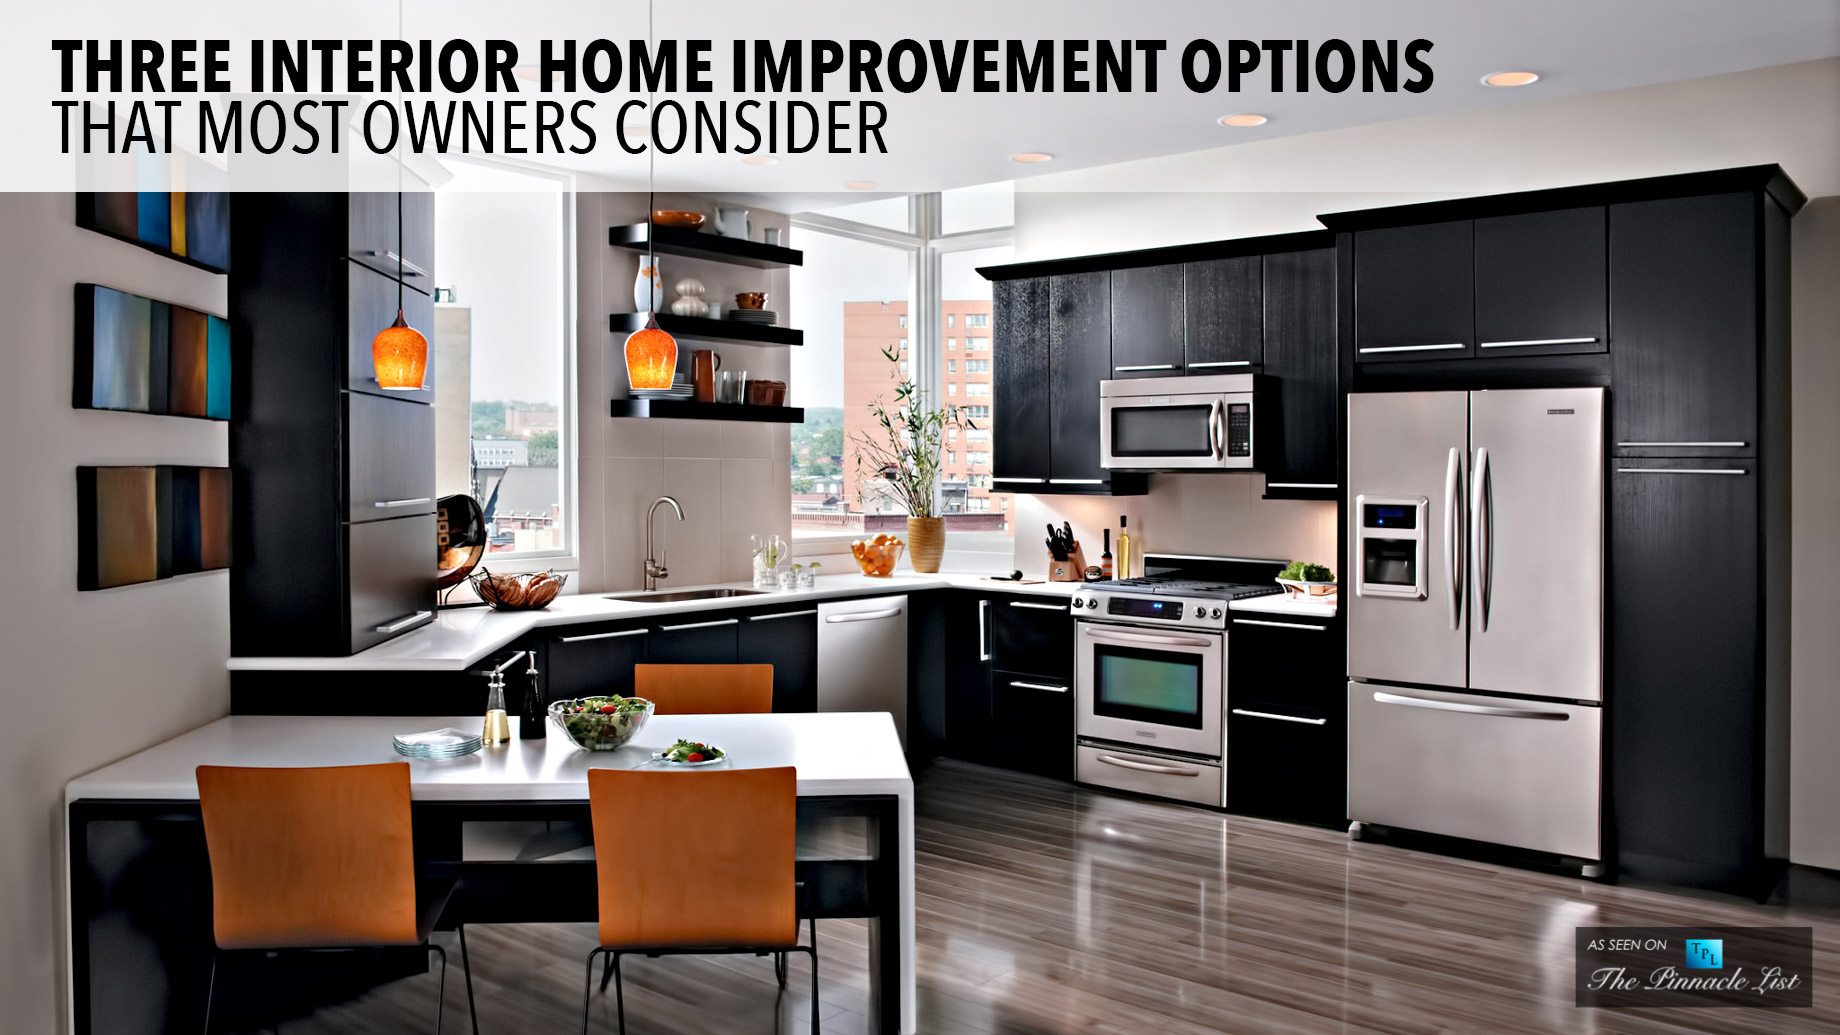 01b-Three-Interior-Home-Improvement-Options-that-Most-Owners-Consider.jpg